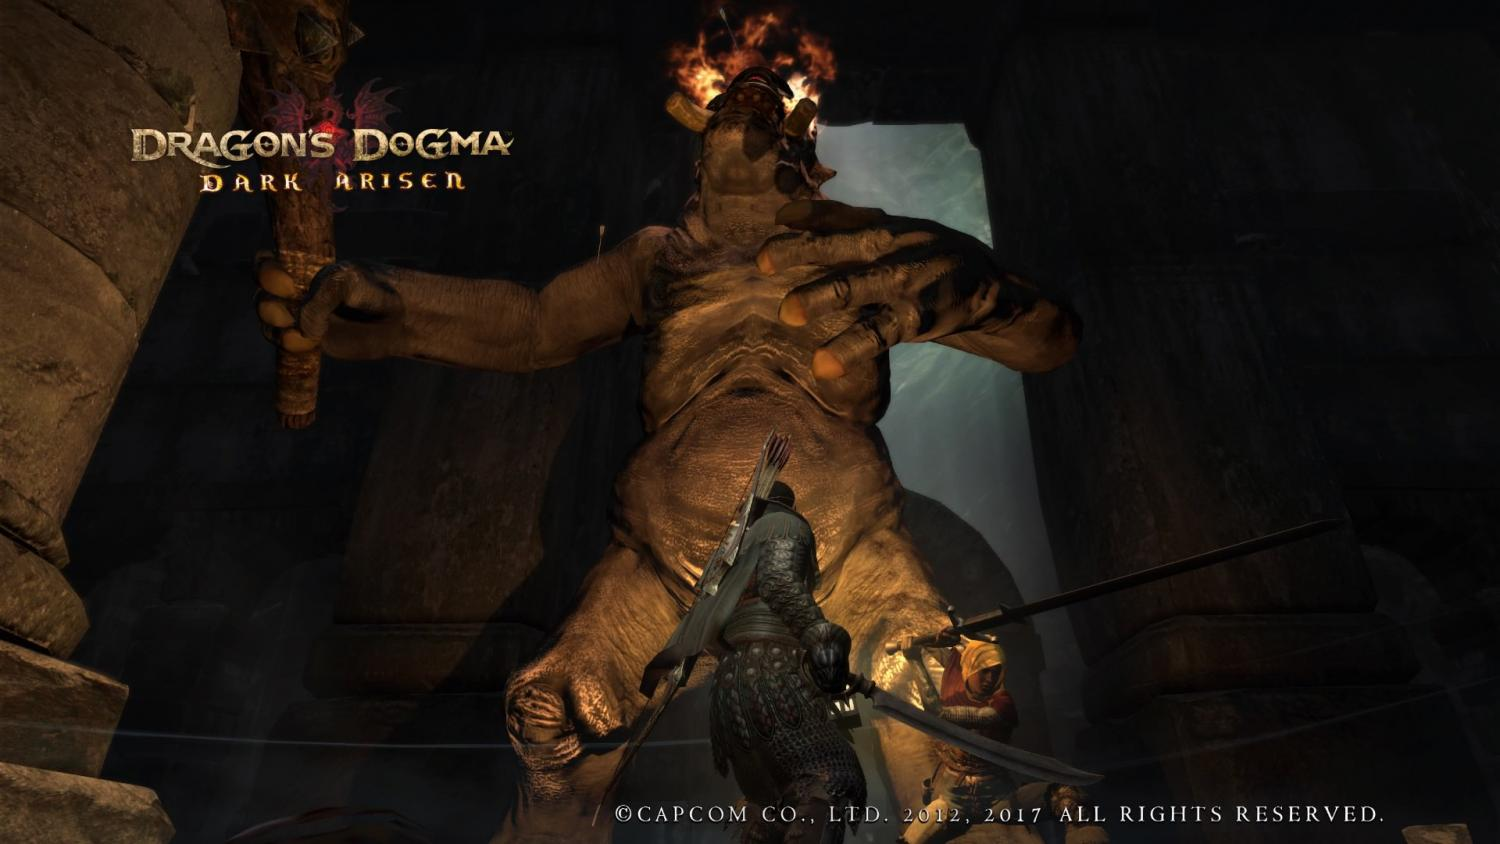 'Dragon's Dogma' stands the test of time